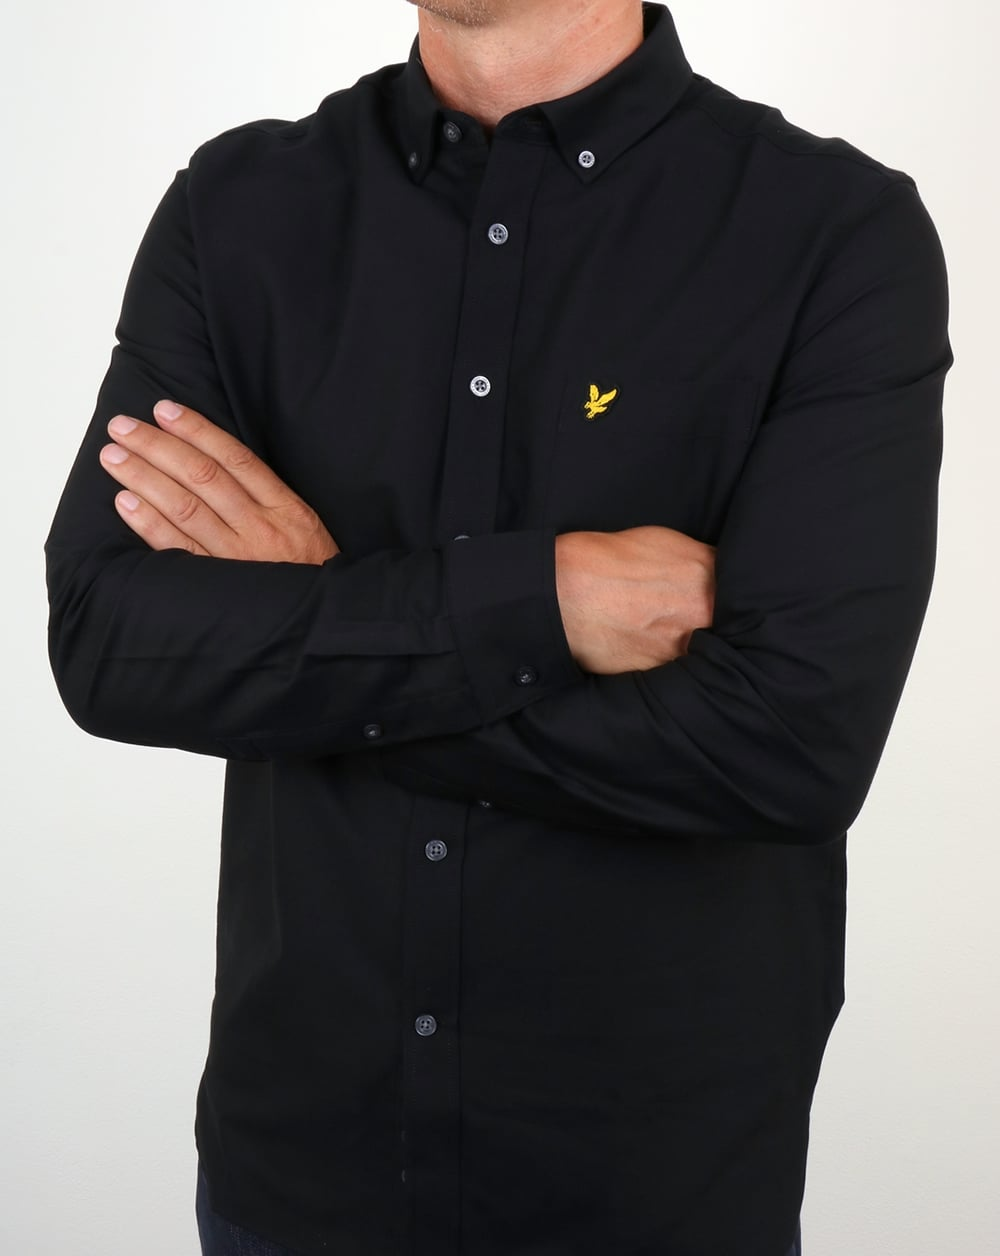 Lyle and scott oxford shirt black cotton long sleeve smart for Lyle and scott shirt sale